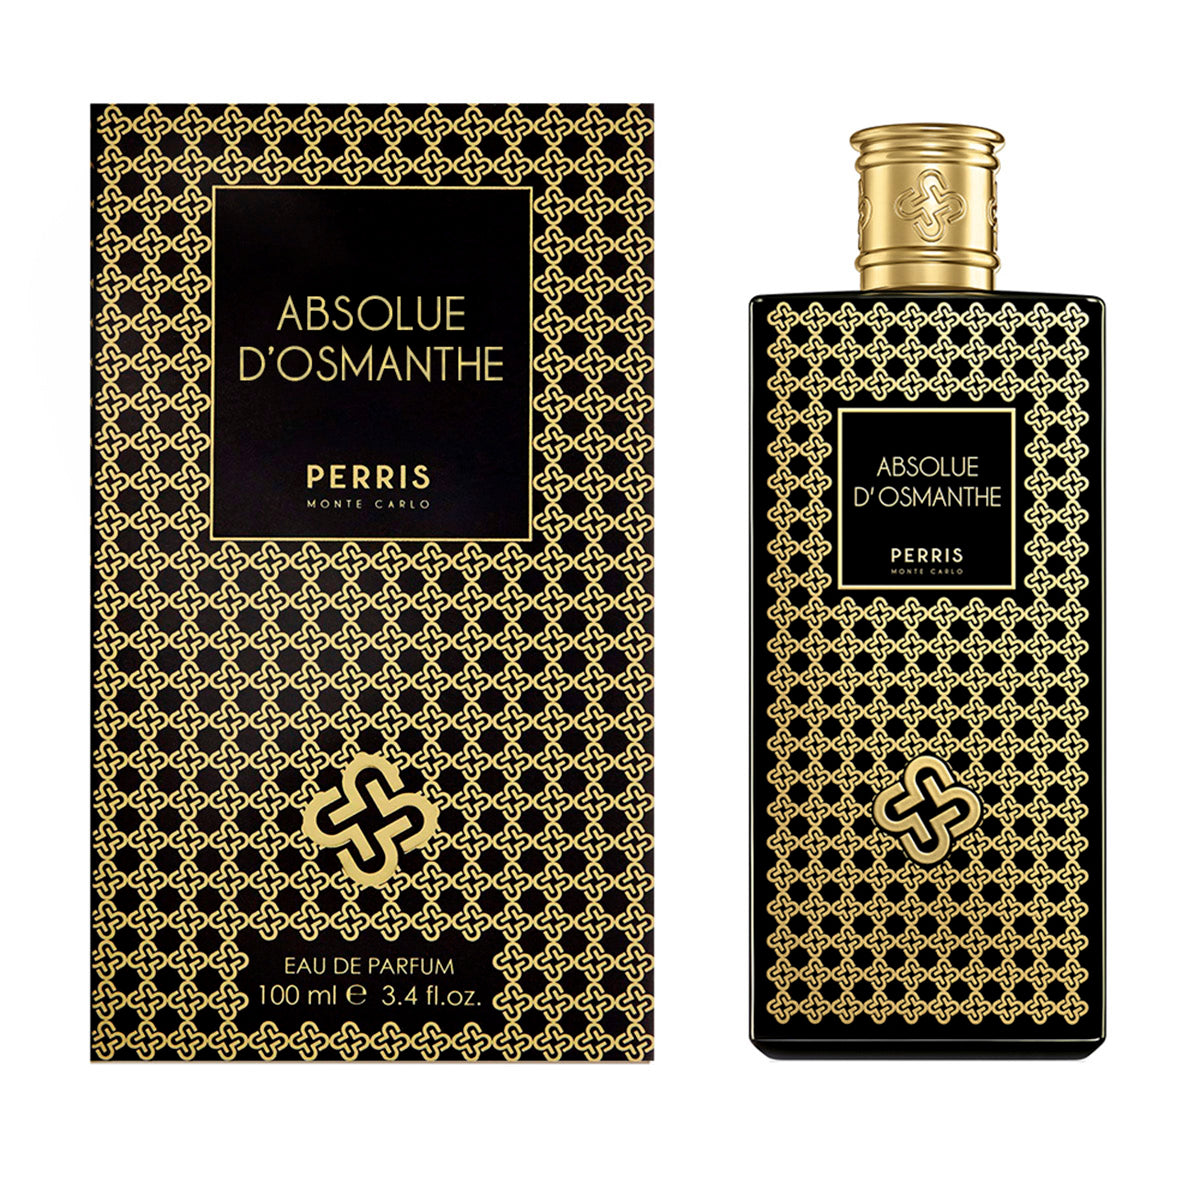 Absolue D'Osmanthe - Perris Monte Carlo - EDP 100ml